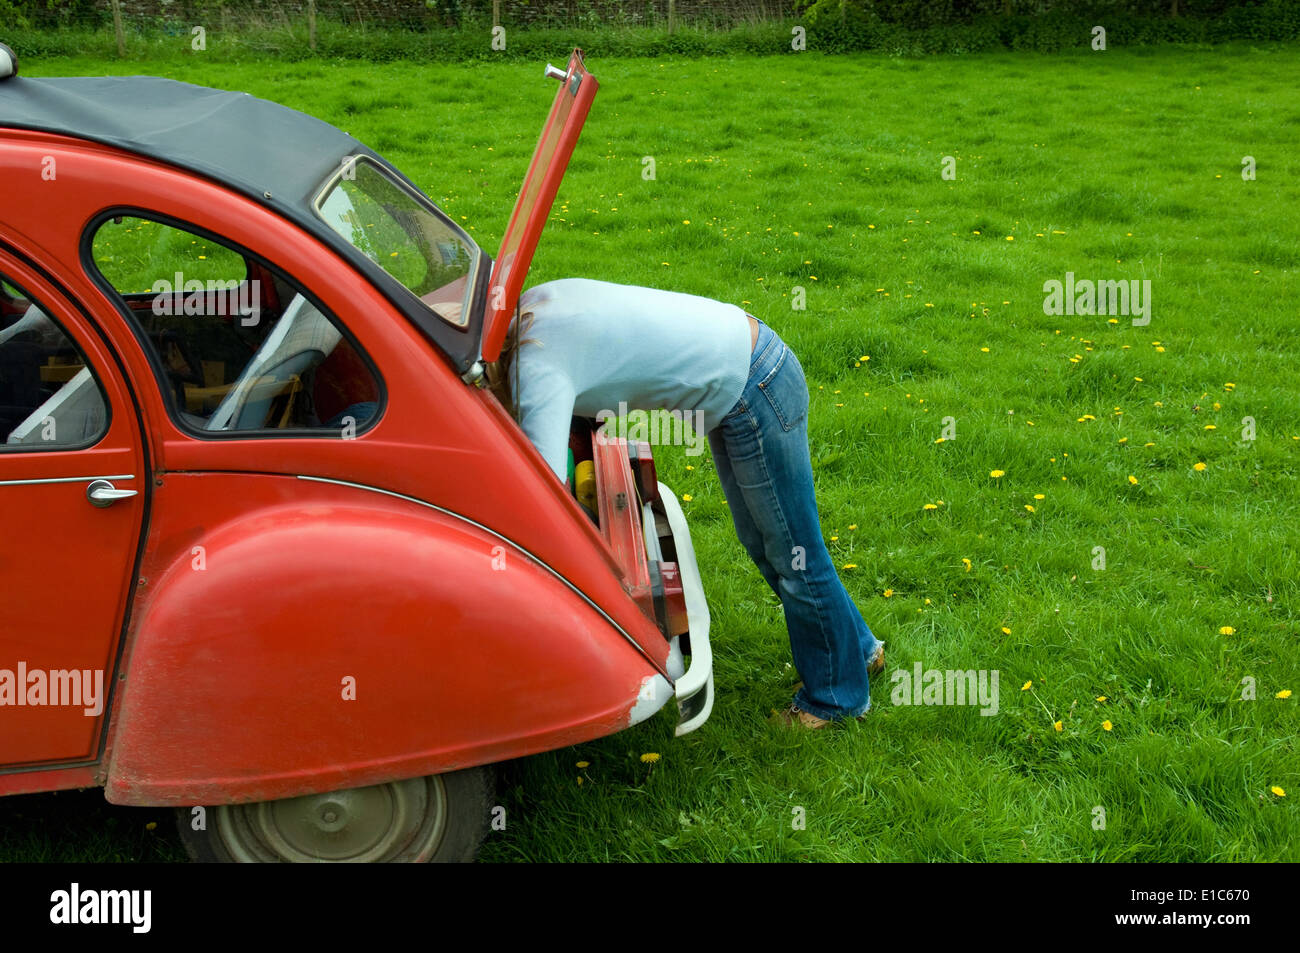 A  person leaning in to the boot at the rear of the car. - Stock Image